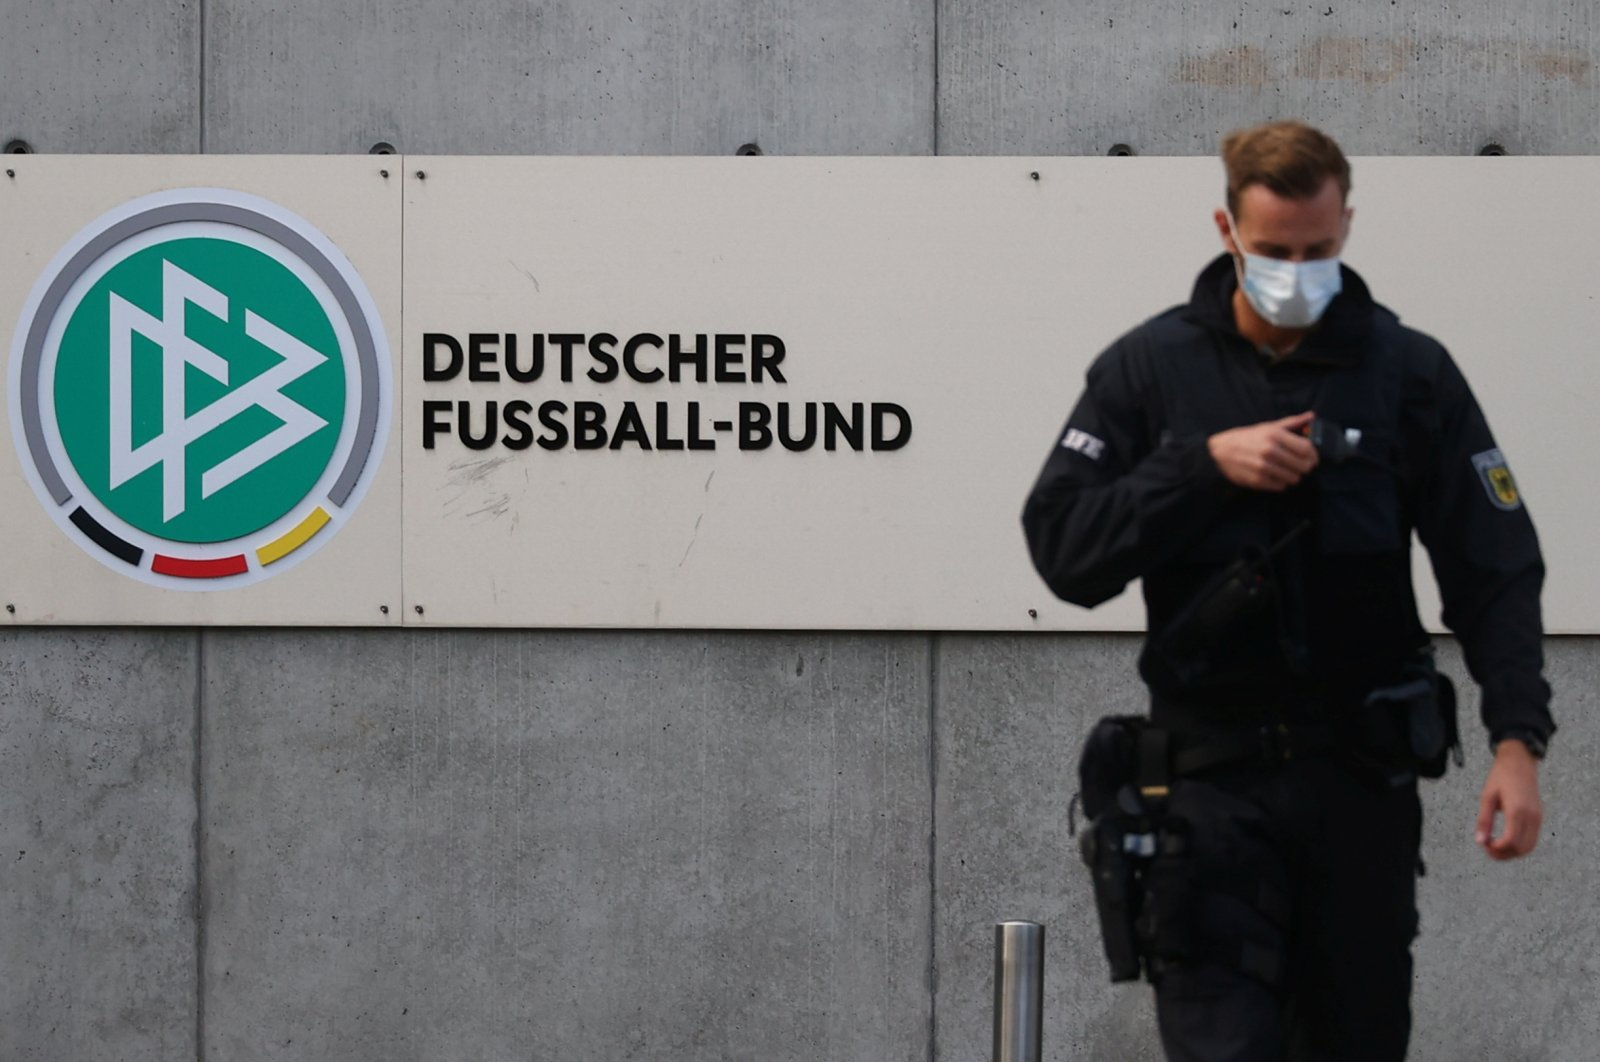 Police secure the area in front of the German Football Association (DFB) headquarters as German prosecutors and tax authorities search offices of the DFB, in Frankfurt, Germany, Oct. 7, 2020. (Reuters Photo)